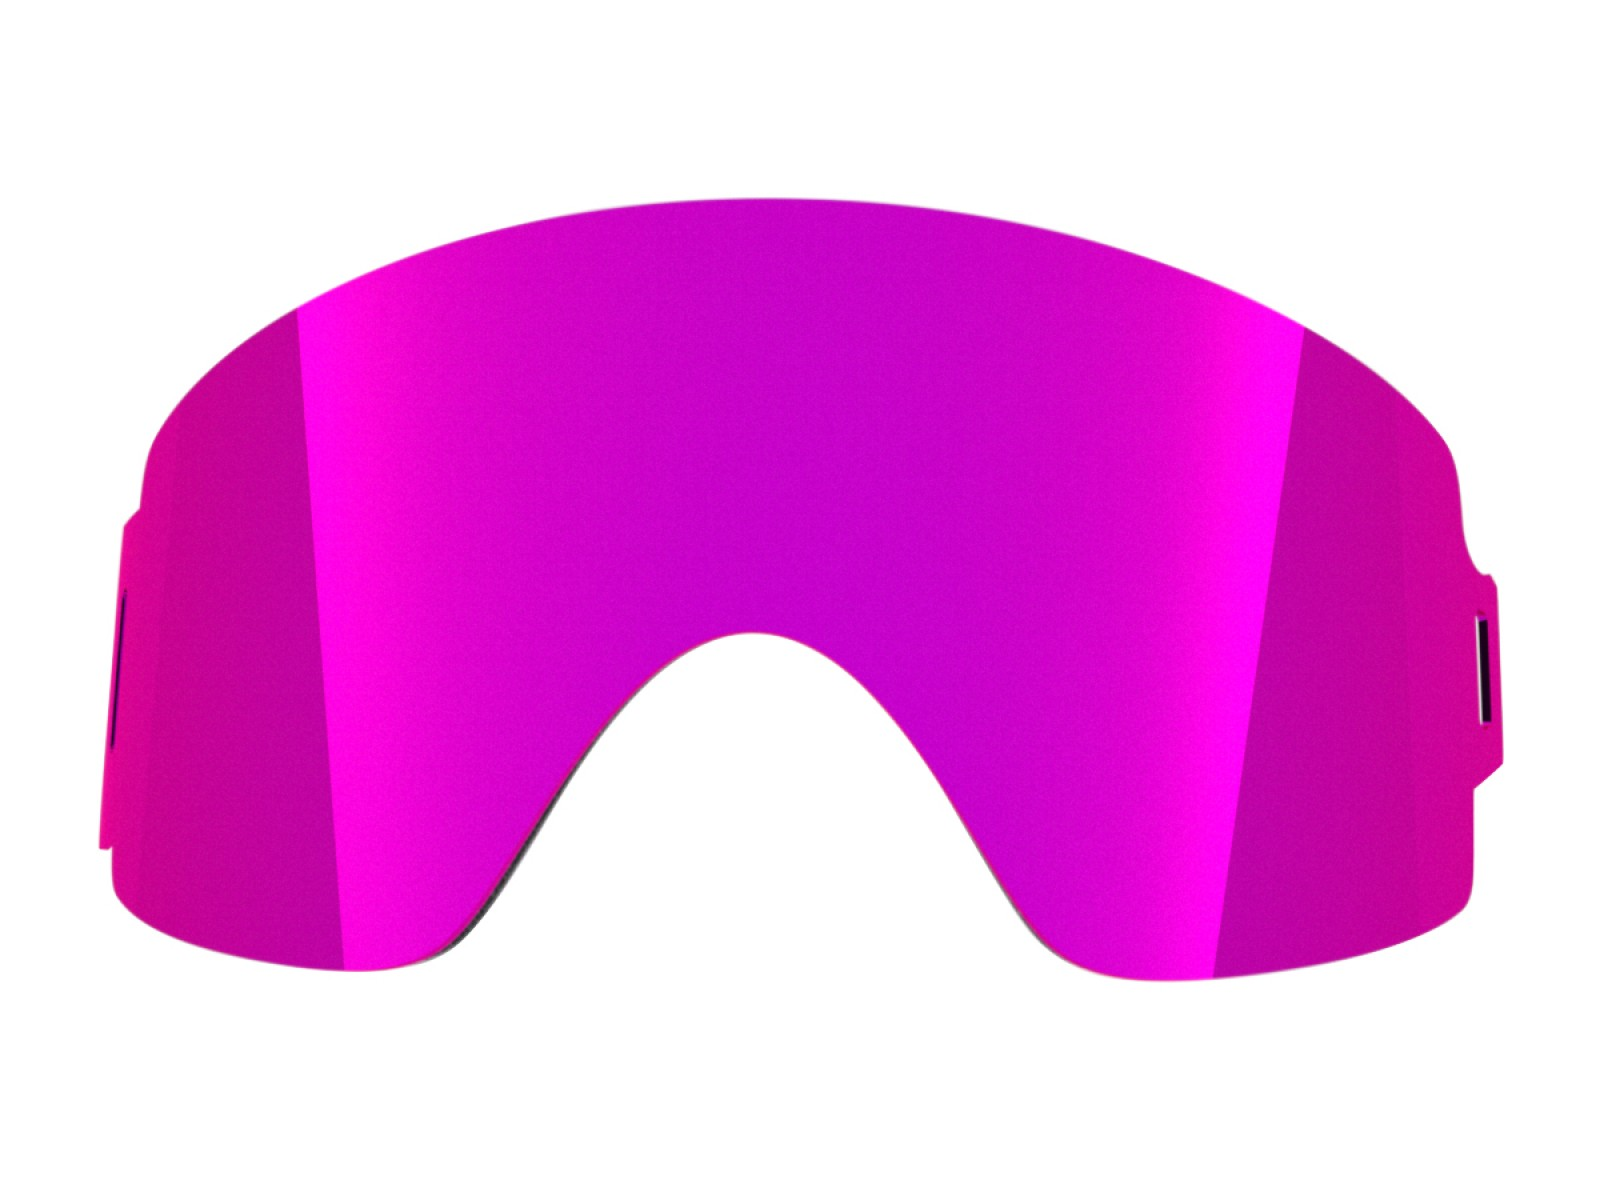 VIOLET MCI LENS FOR SHIFT SNOW GOGGLE